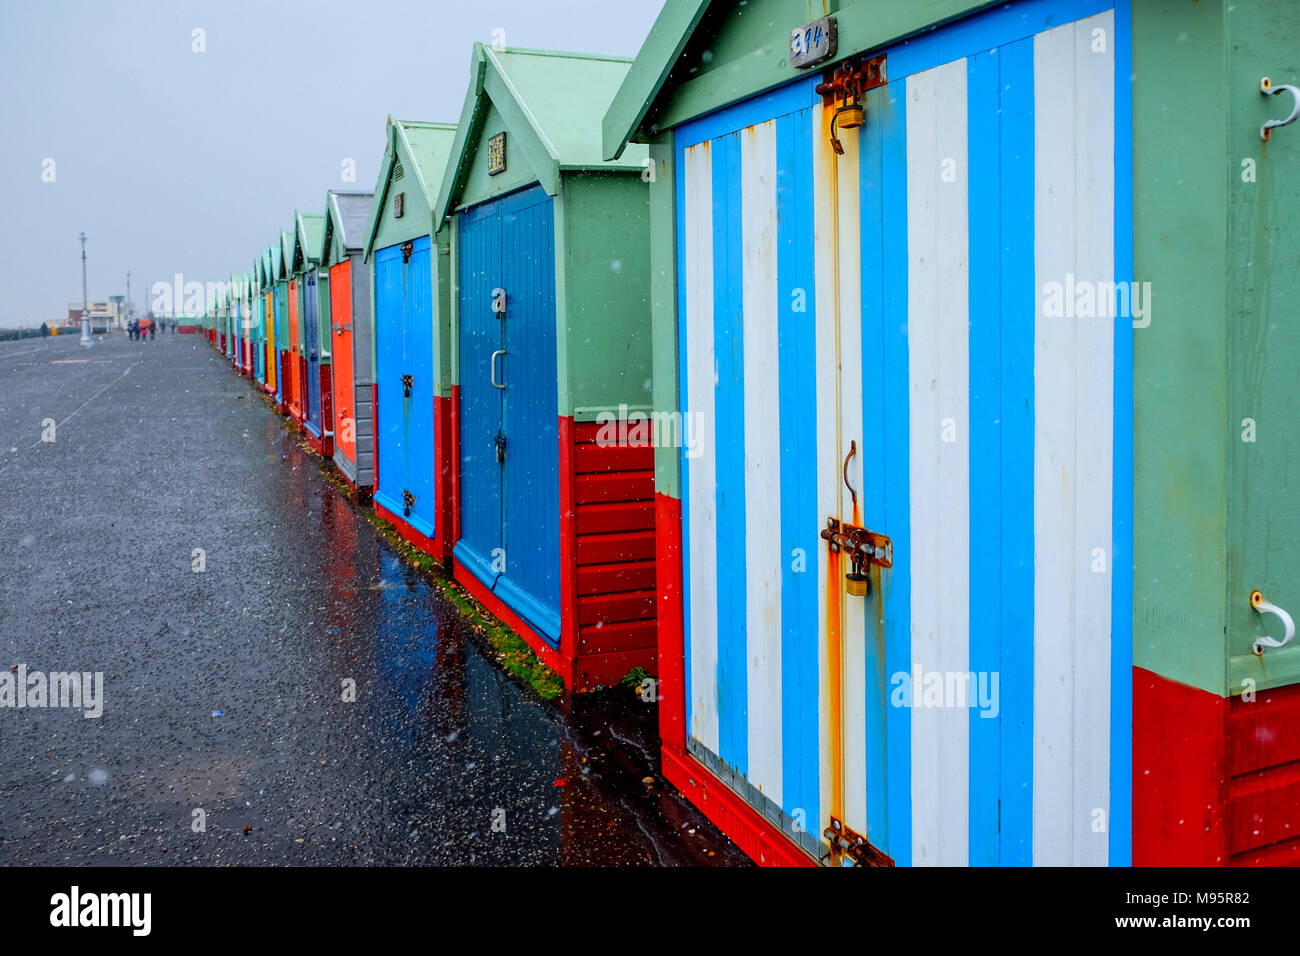 Brighton seafront fourty beach huts, the huts have multi coloured doors in a straight line on a concrete promenade the sky is grey the closest beach h - Stock Image